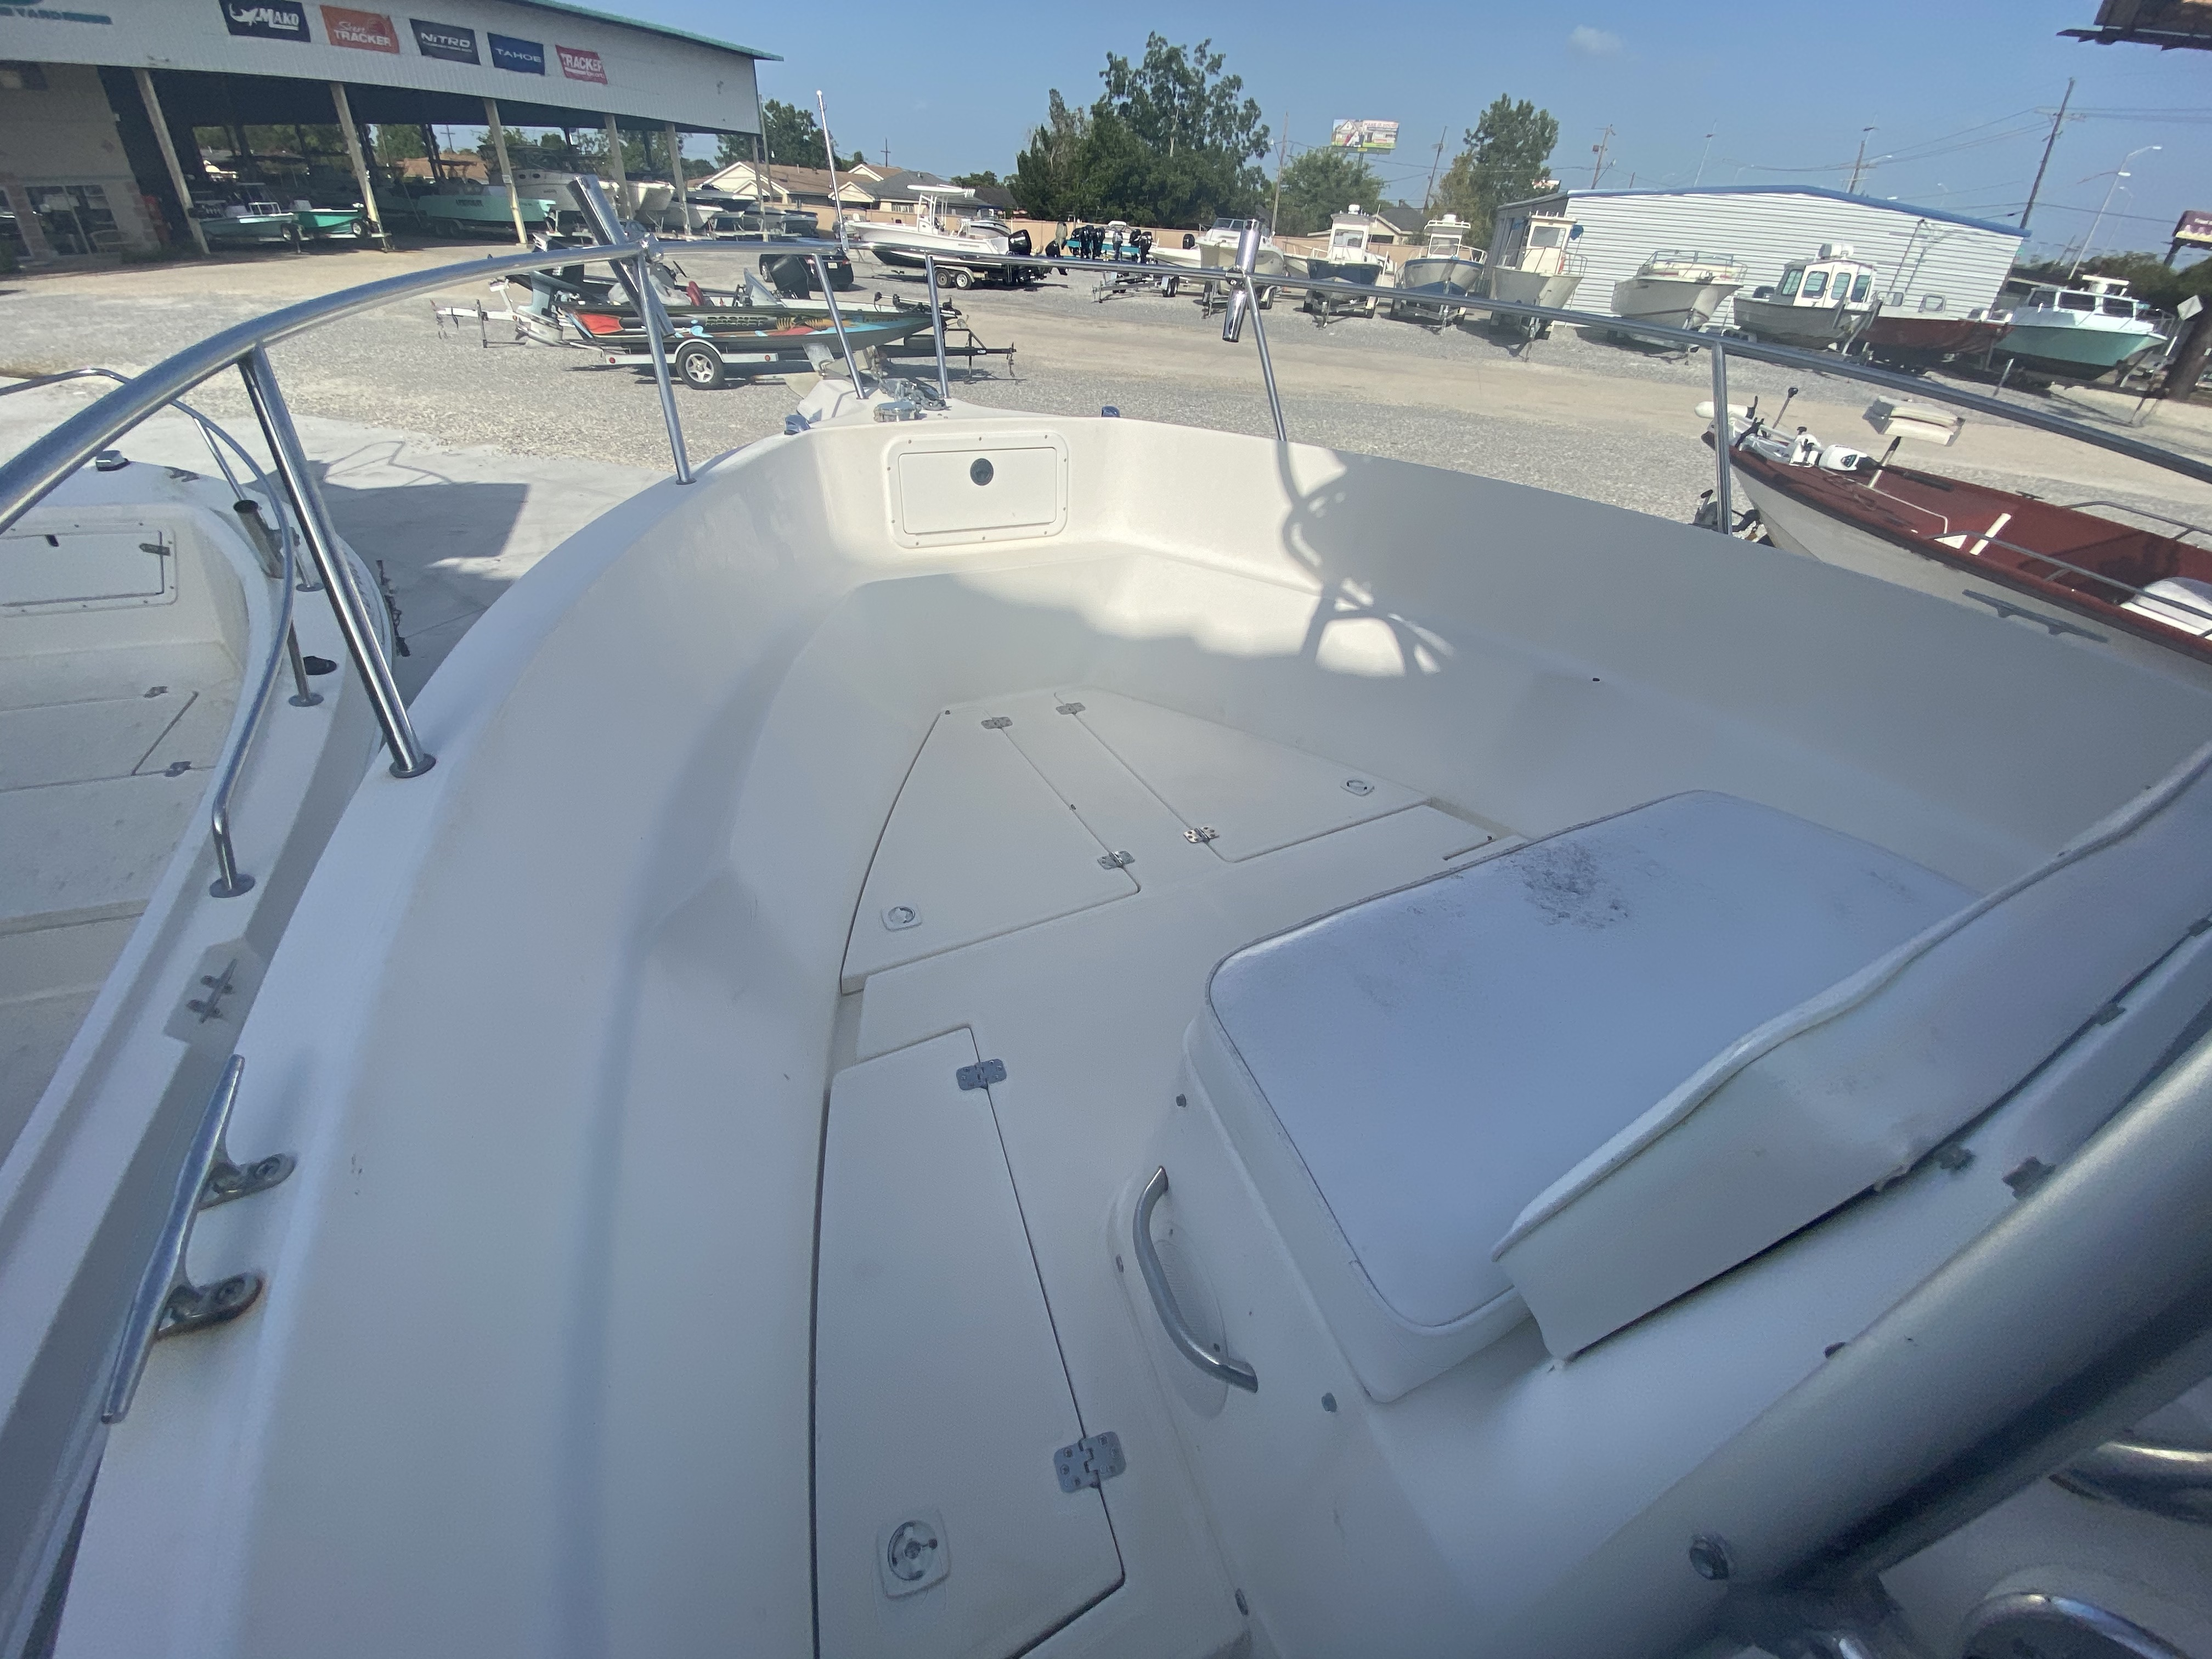 2002 Wellcraft boat for sale, model of the boat is 230 & Image # 10 of 14